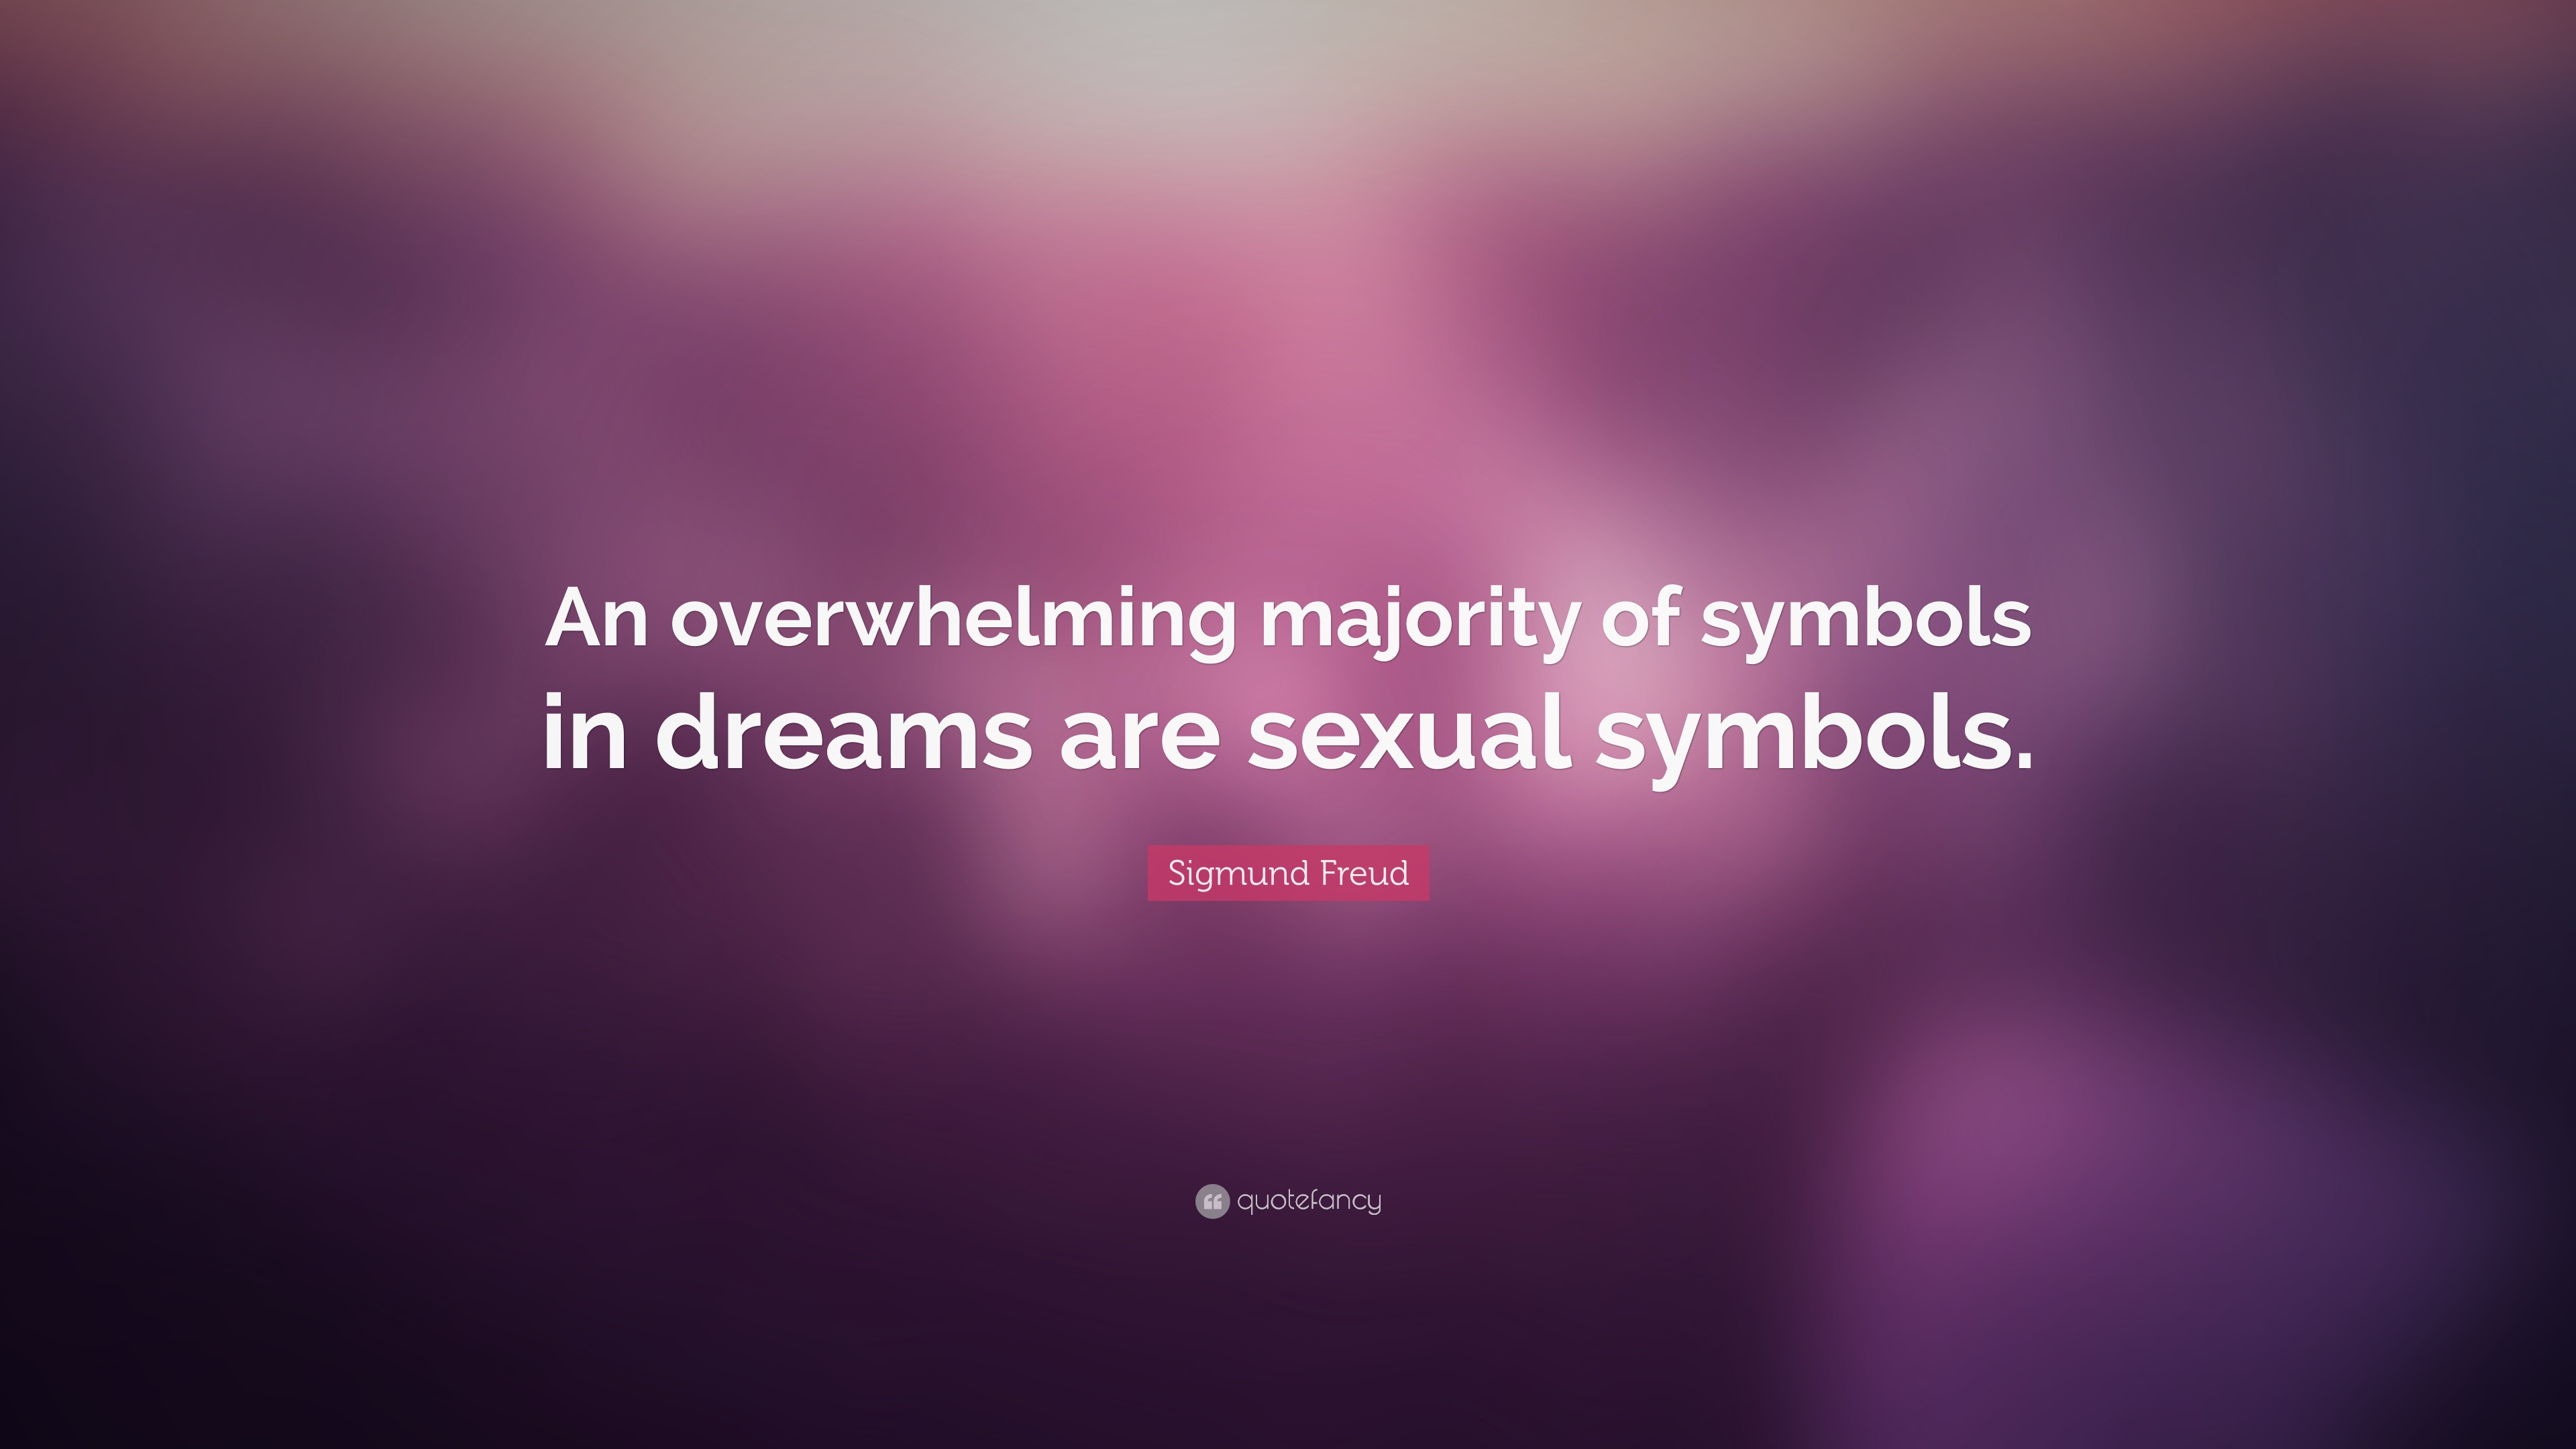 Sigmund freud quote an overwhelming majority of symbols in sigmund freud quote an overwhelming majority of symbols in dreams are sexual symbols biocorpaavc Choice Image